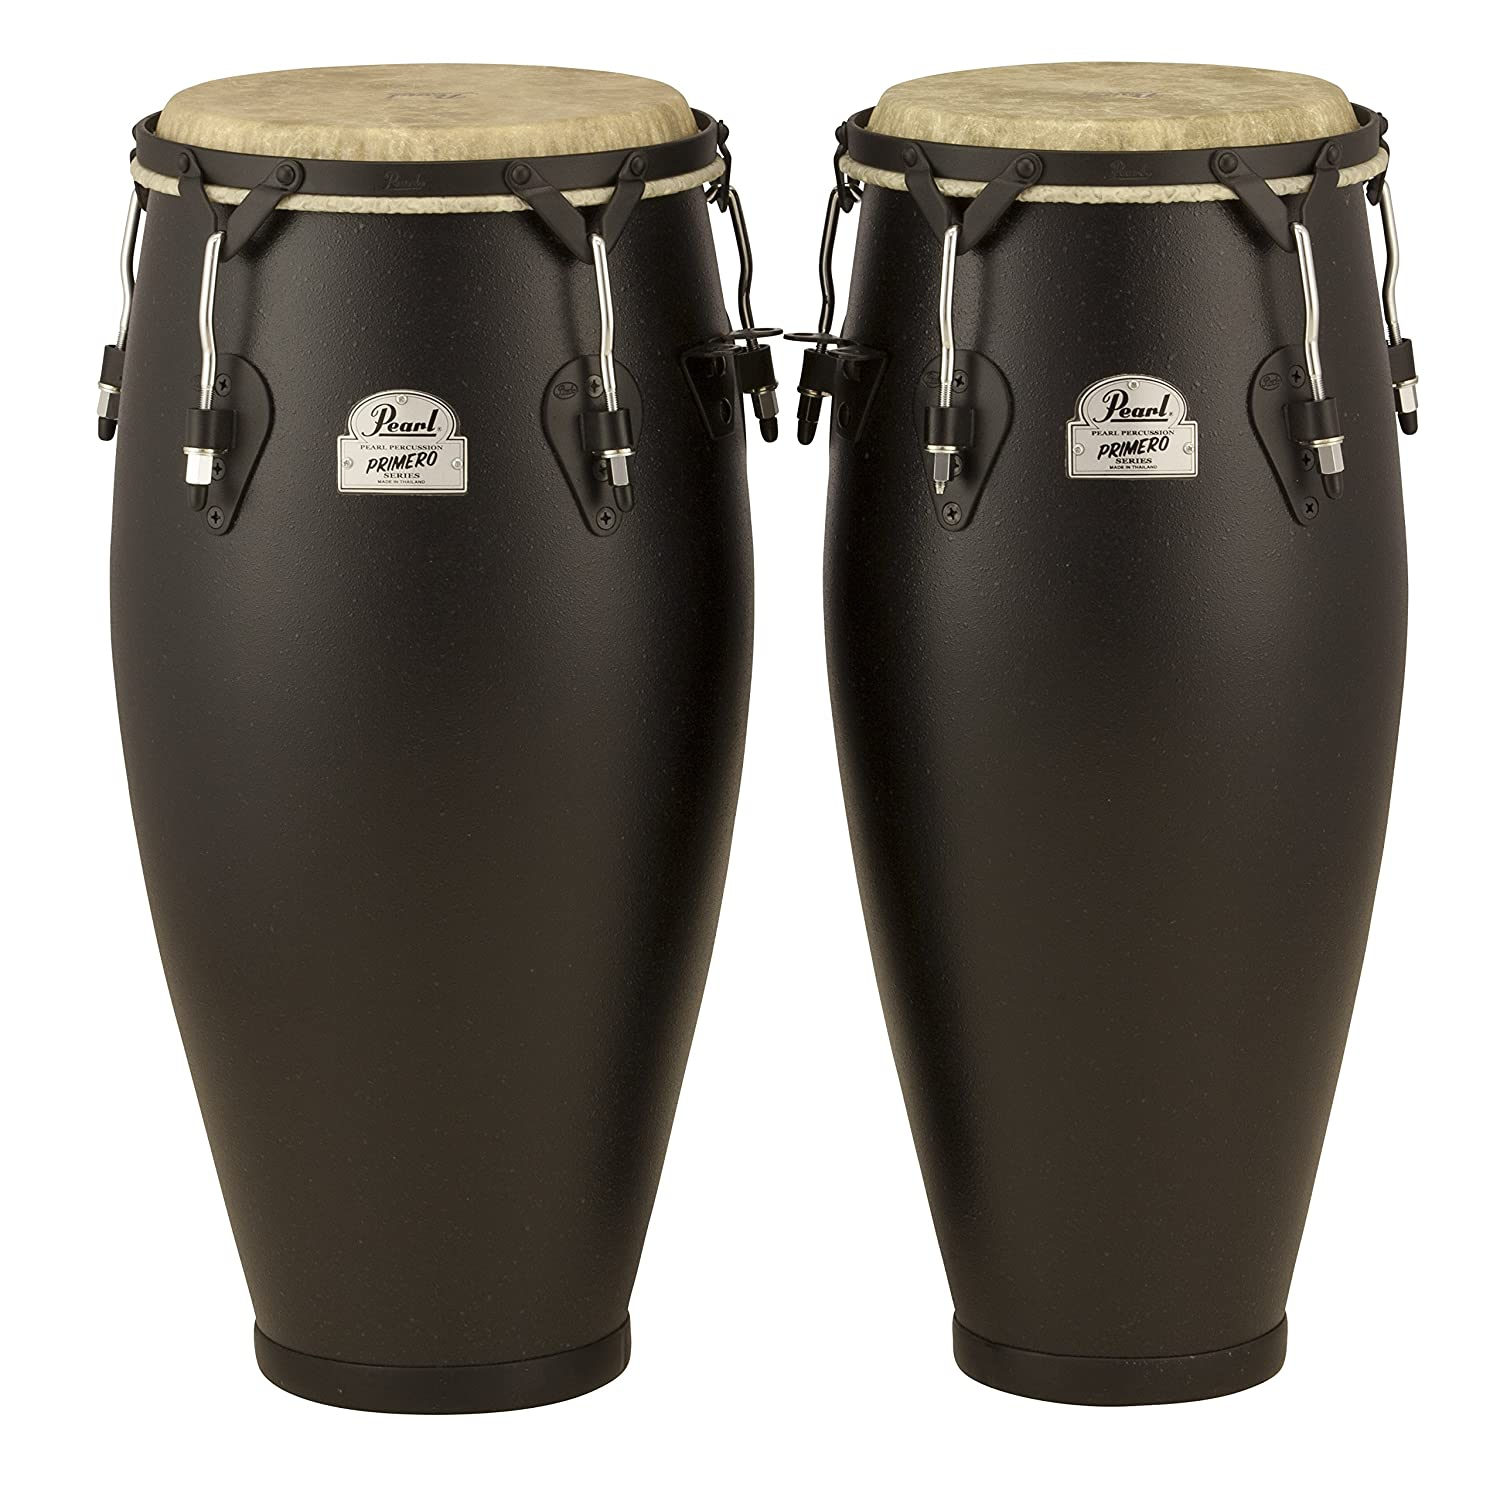 Pearl PFC202EDU649 10-Inch and 11-Inch Primero Field Percussion Fiberglass Conga Set without Stand Pearl Corporation